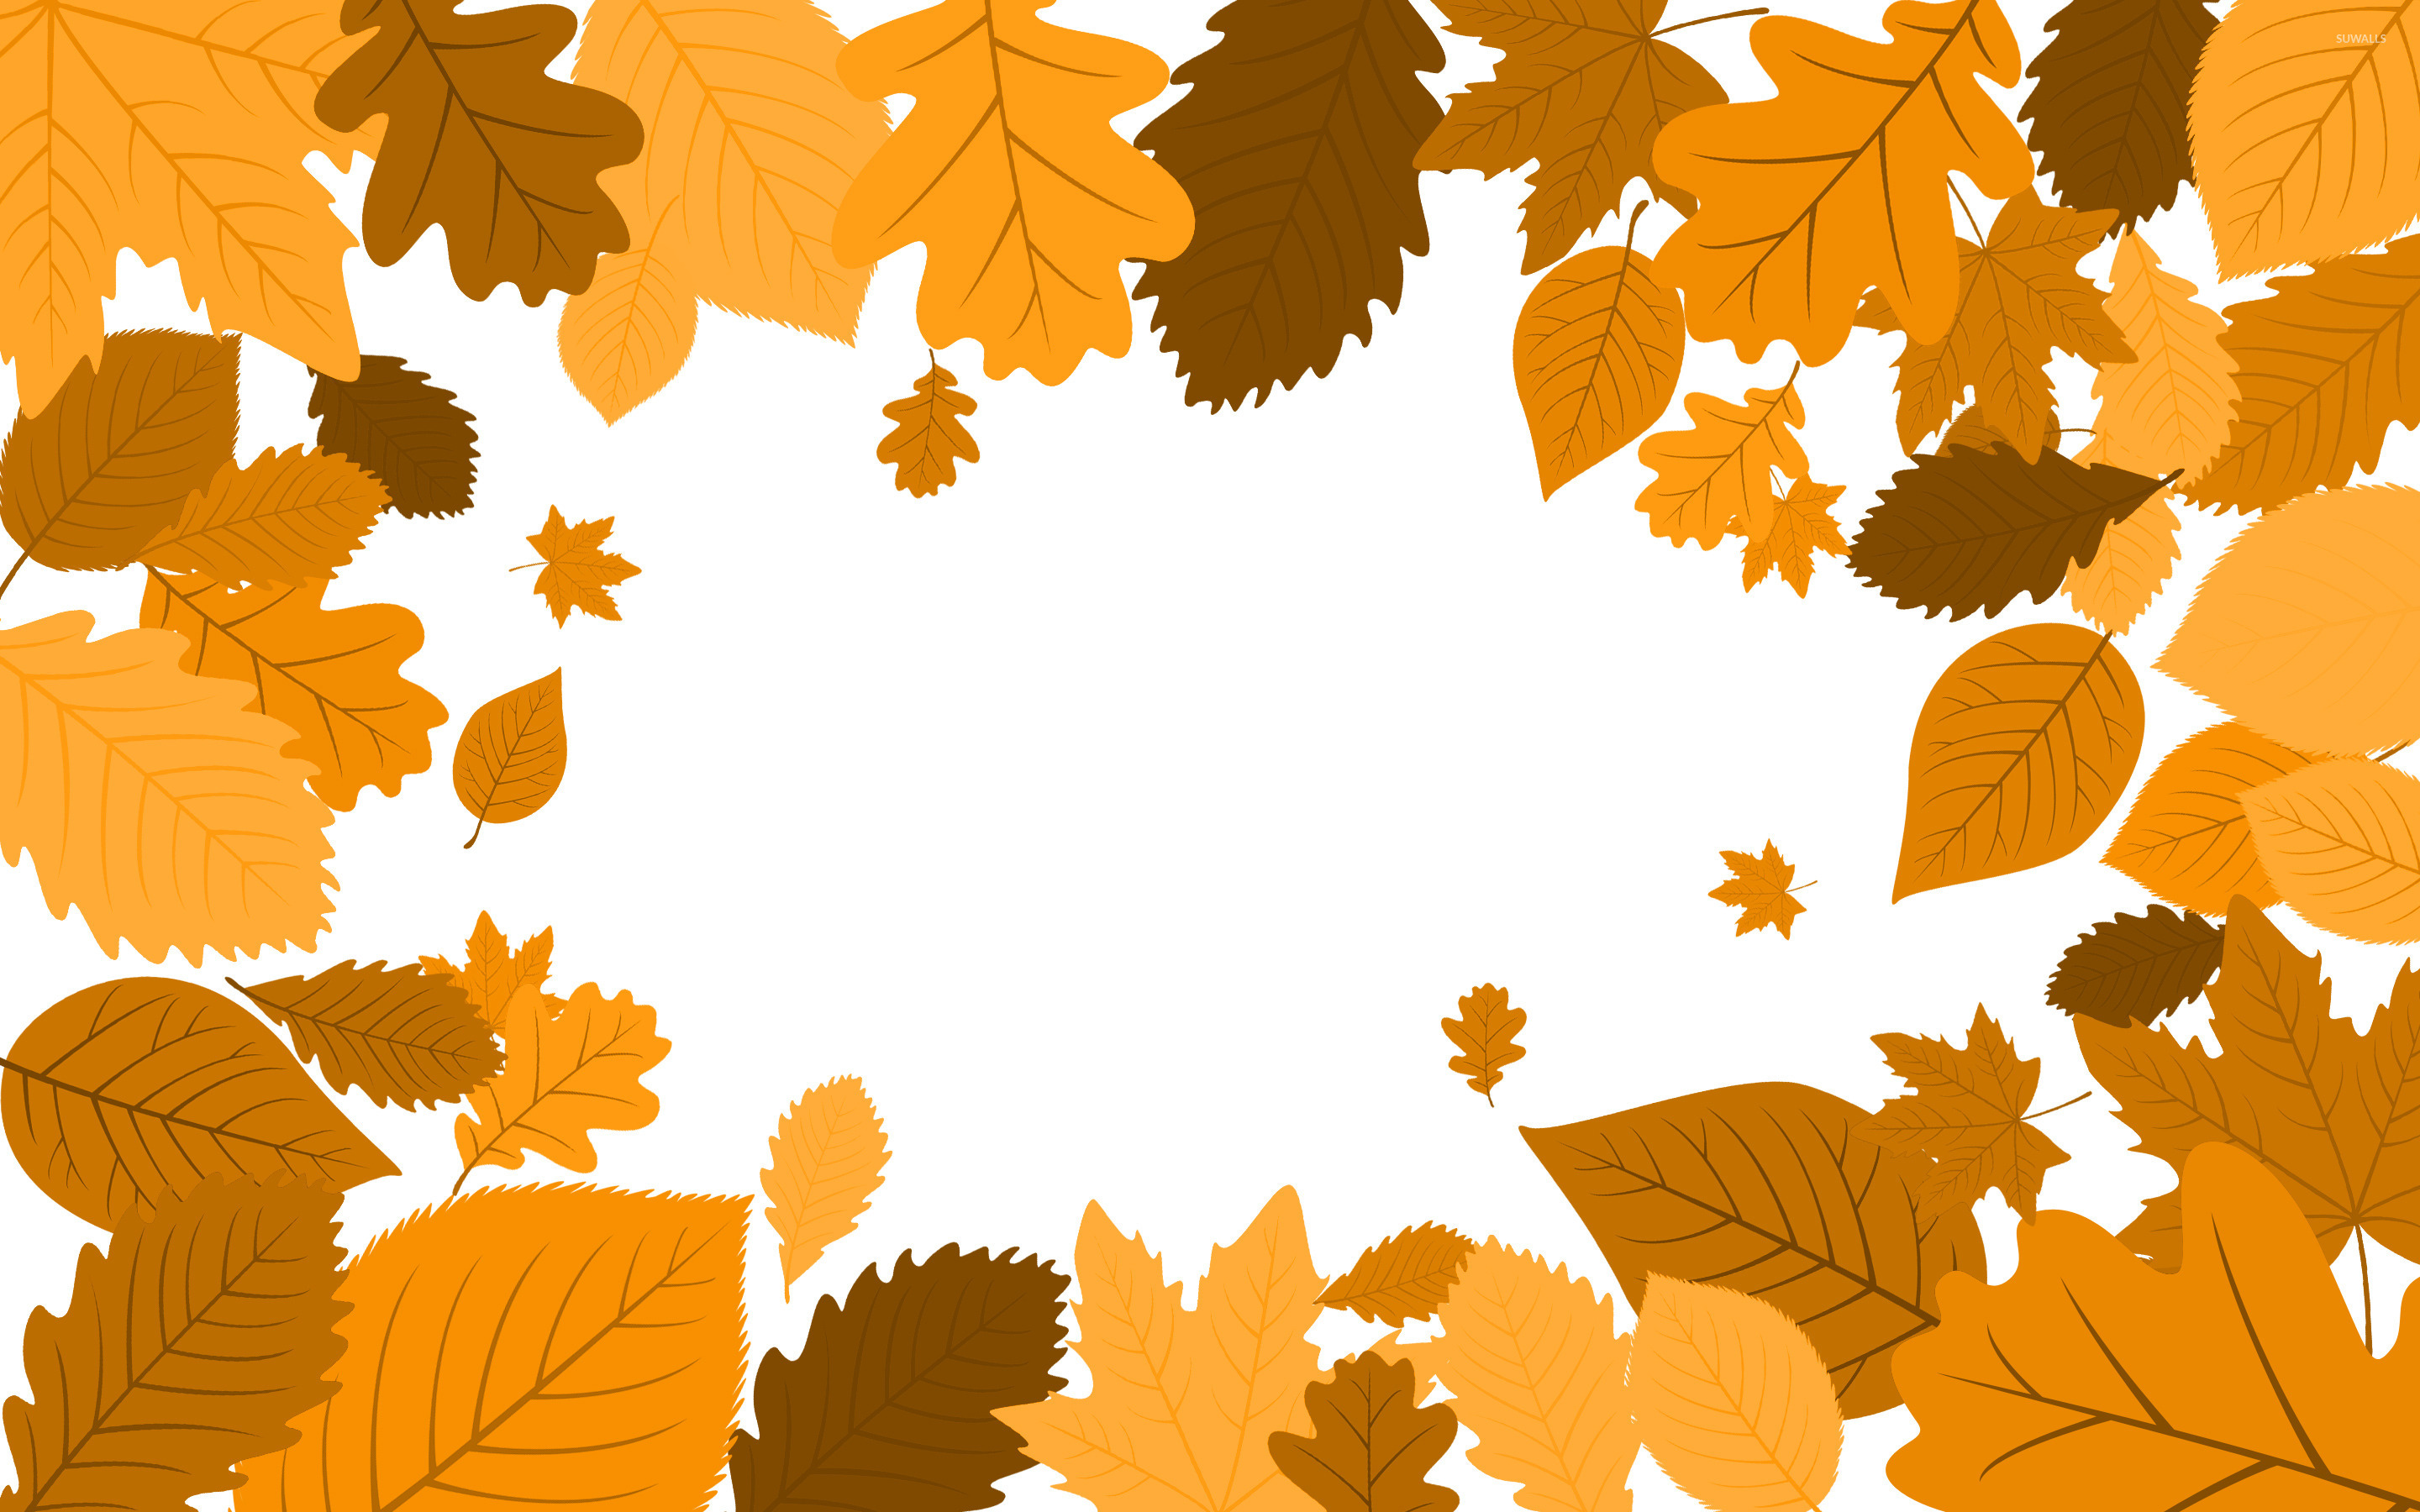 Autumn leaves [15] wallpaper Vector wallpapers